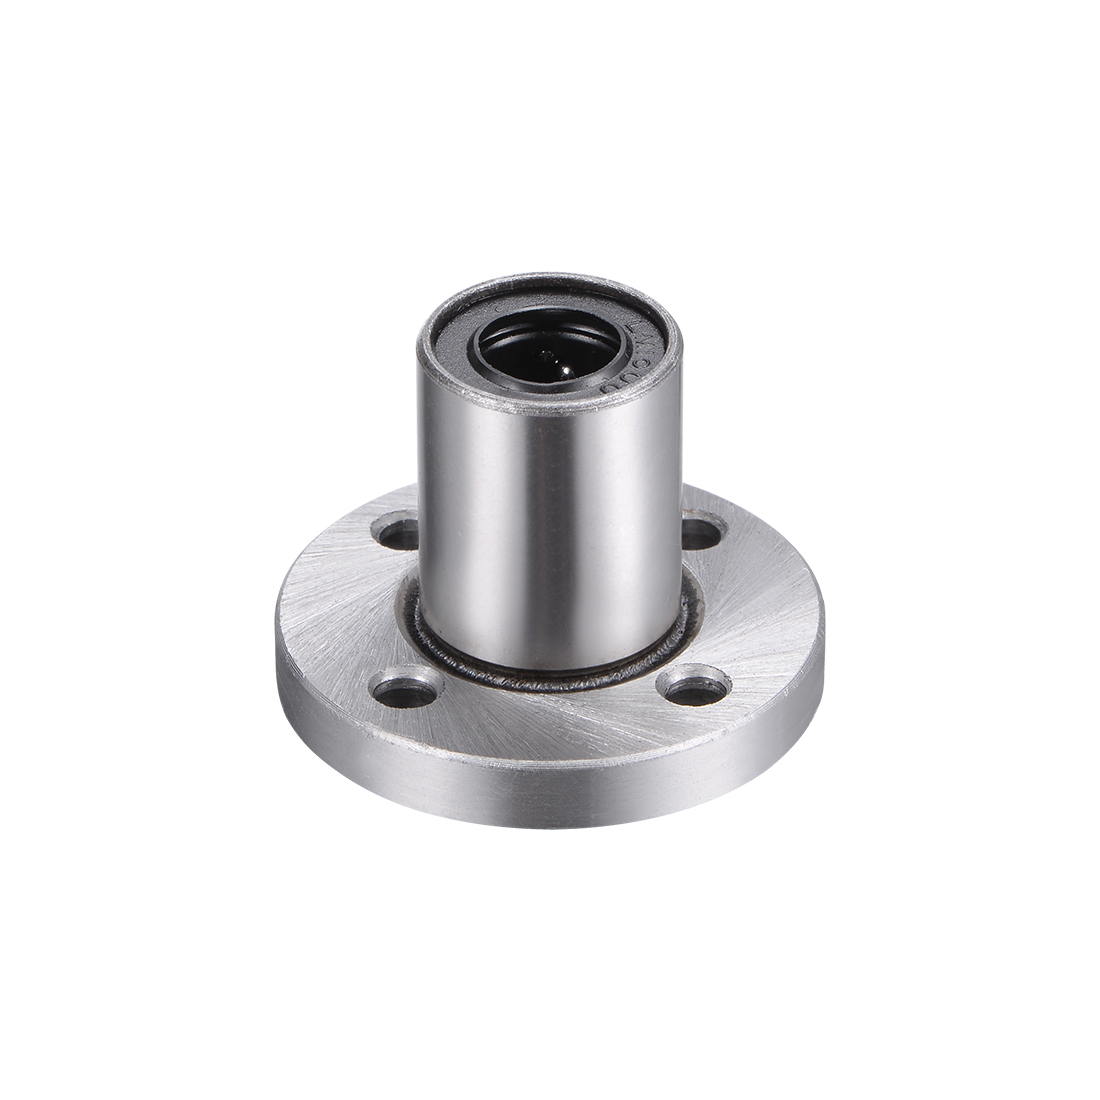 10mm Linear Ball Bearings Round Flange LMF10UU, 10mm Bore, 19mm OD, 29mm Length